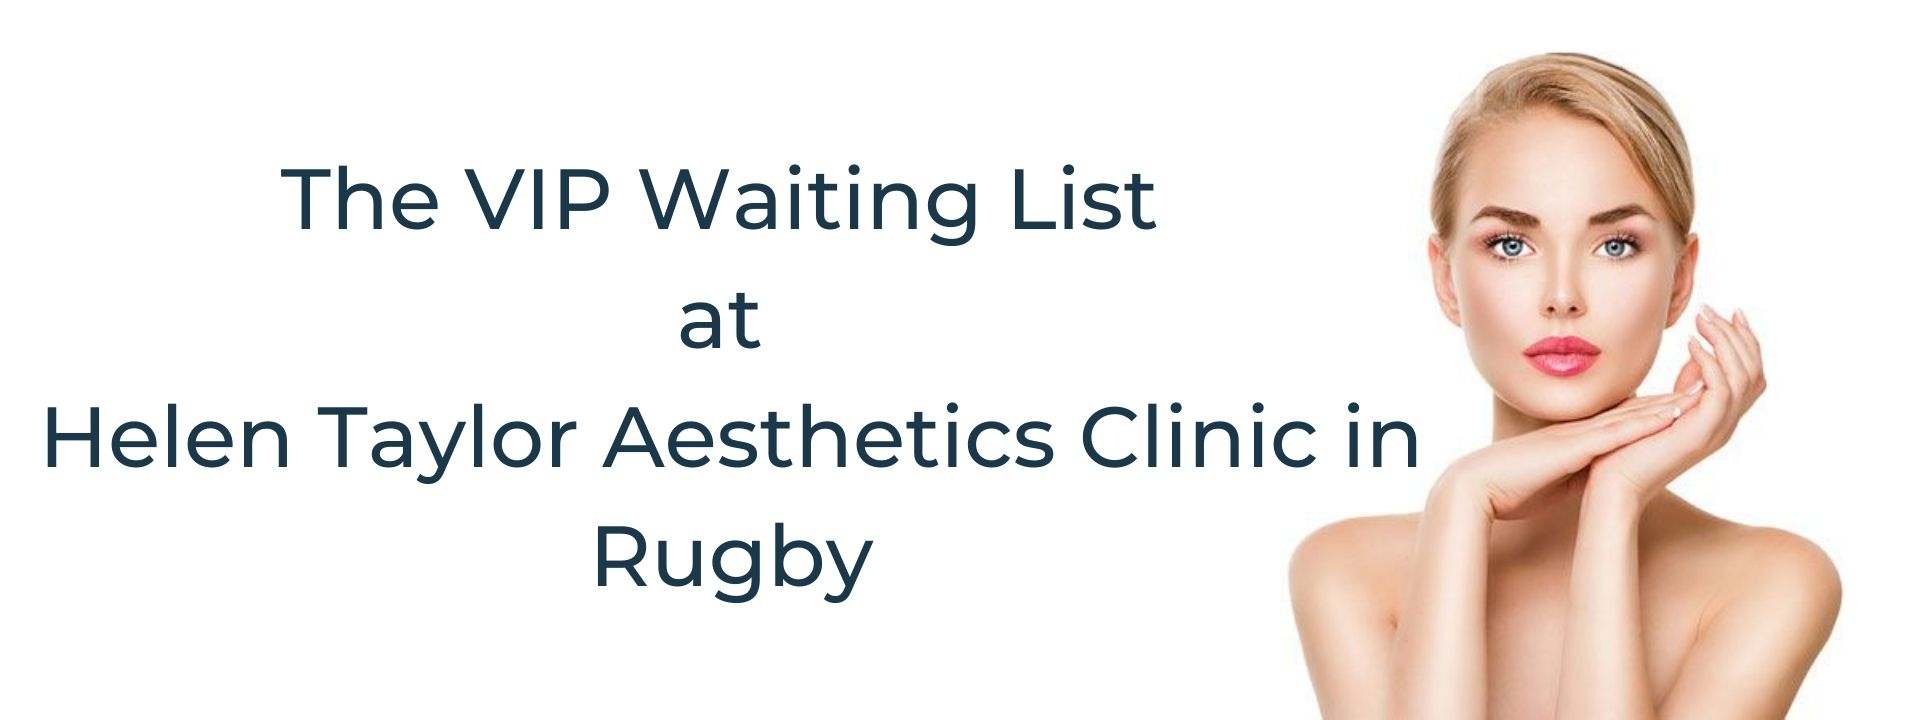 Important News About The VIP Waiting List at Helen Taylor Aesthetics Clinic in Rugby Warwickshire